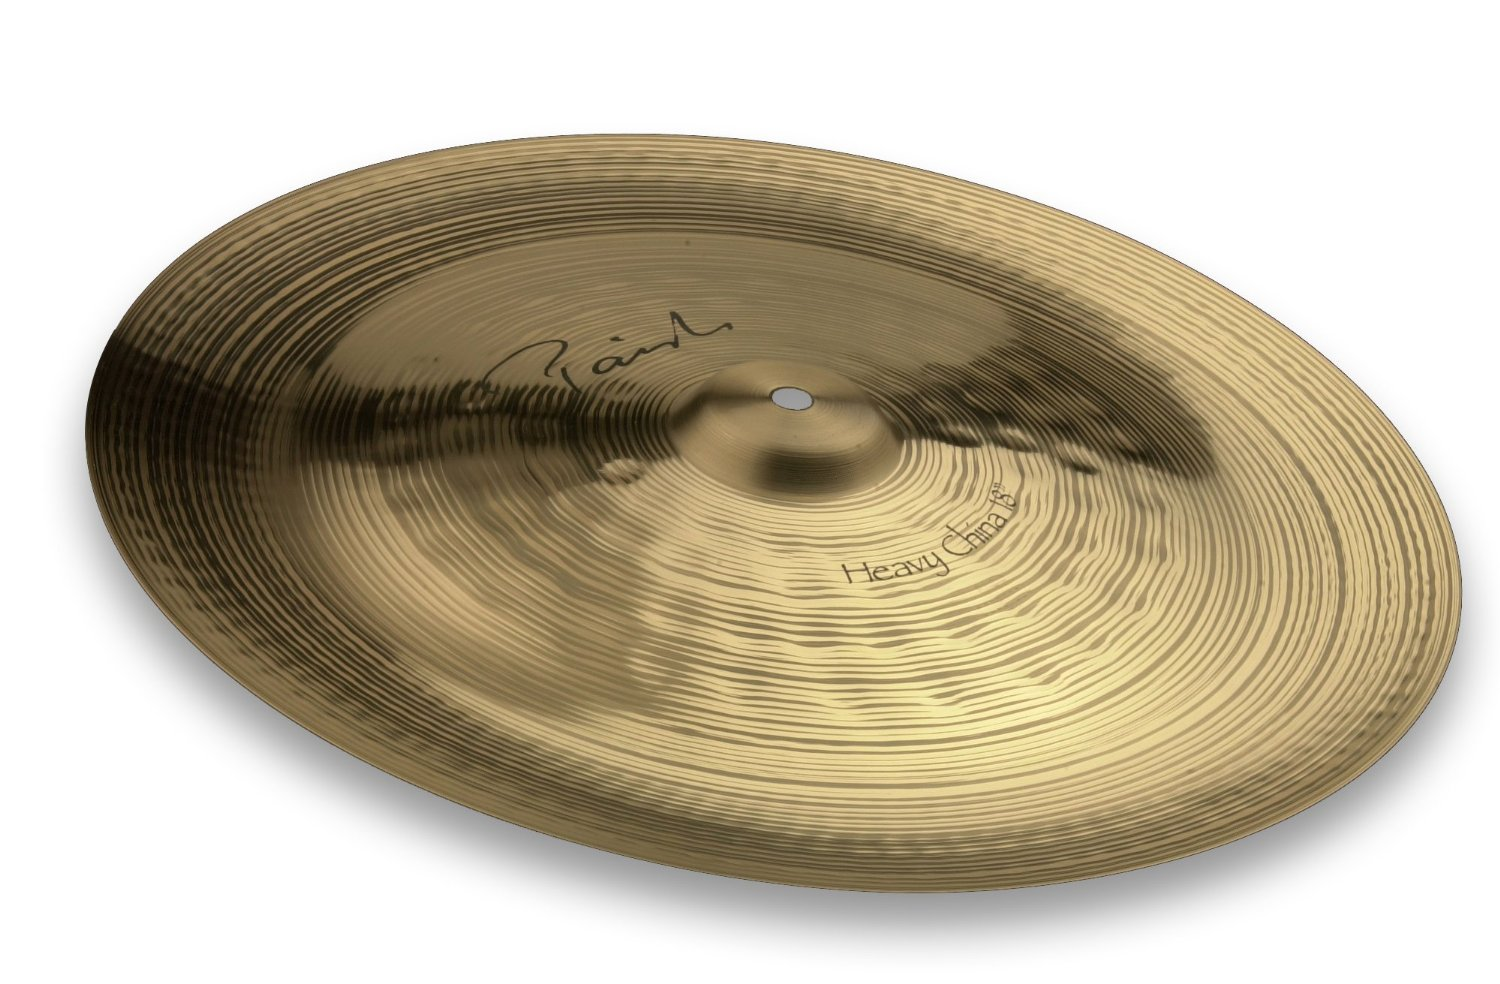 paiste 4002518 18 inch signature heavy china cymbal w integrated bell character ebay. Black Bedroom Furniture Sets. Home Design Ideas